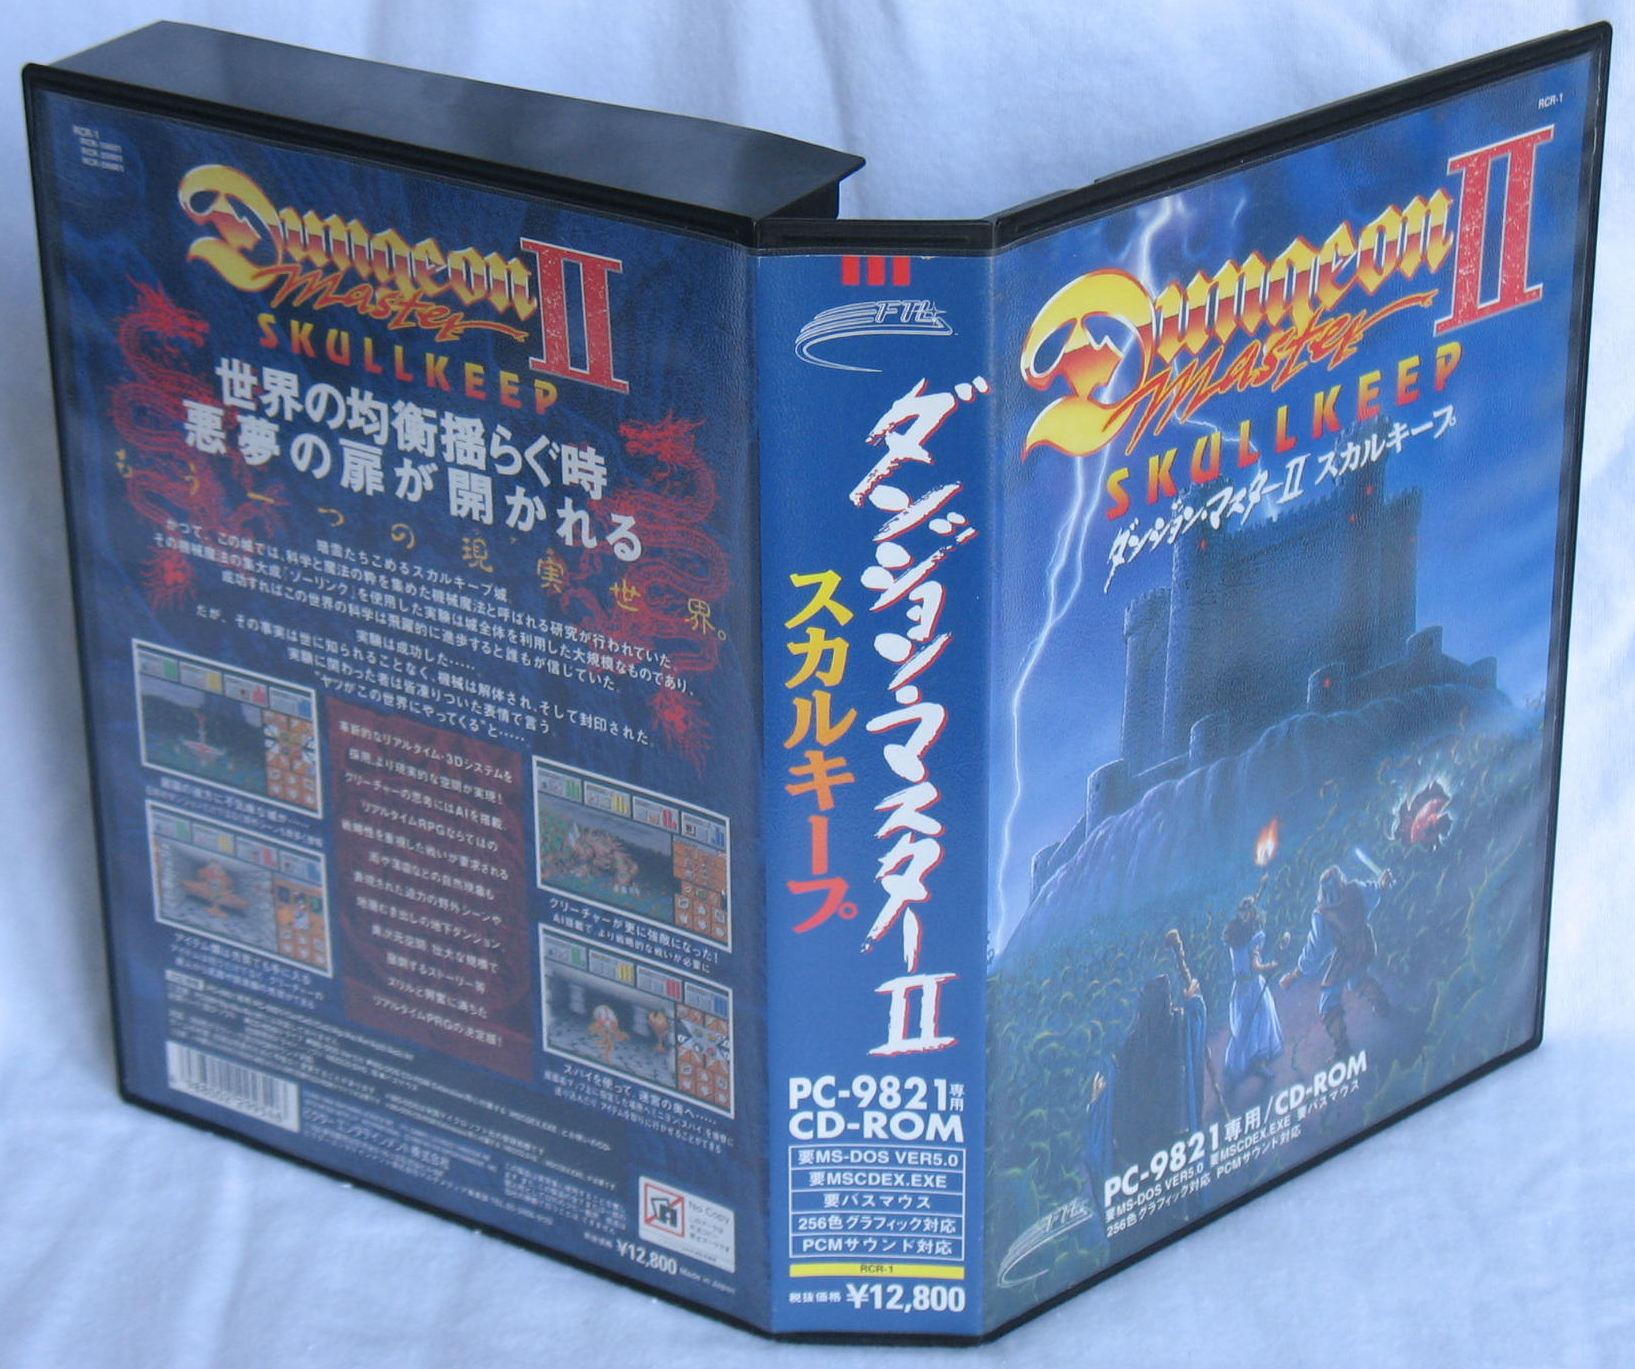 Game - Dungeon Master II - JP - PC-9821 - Box - Front Back Left Top - Photo